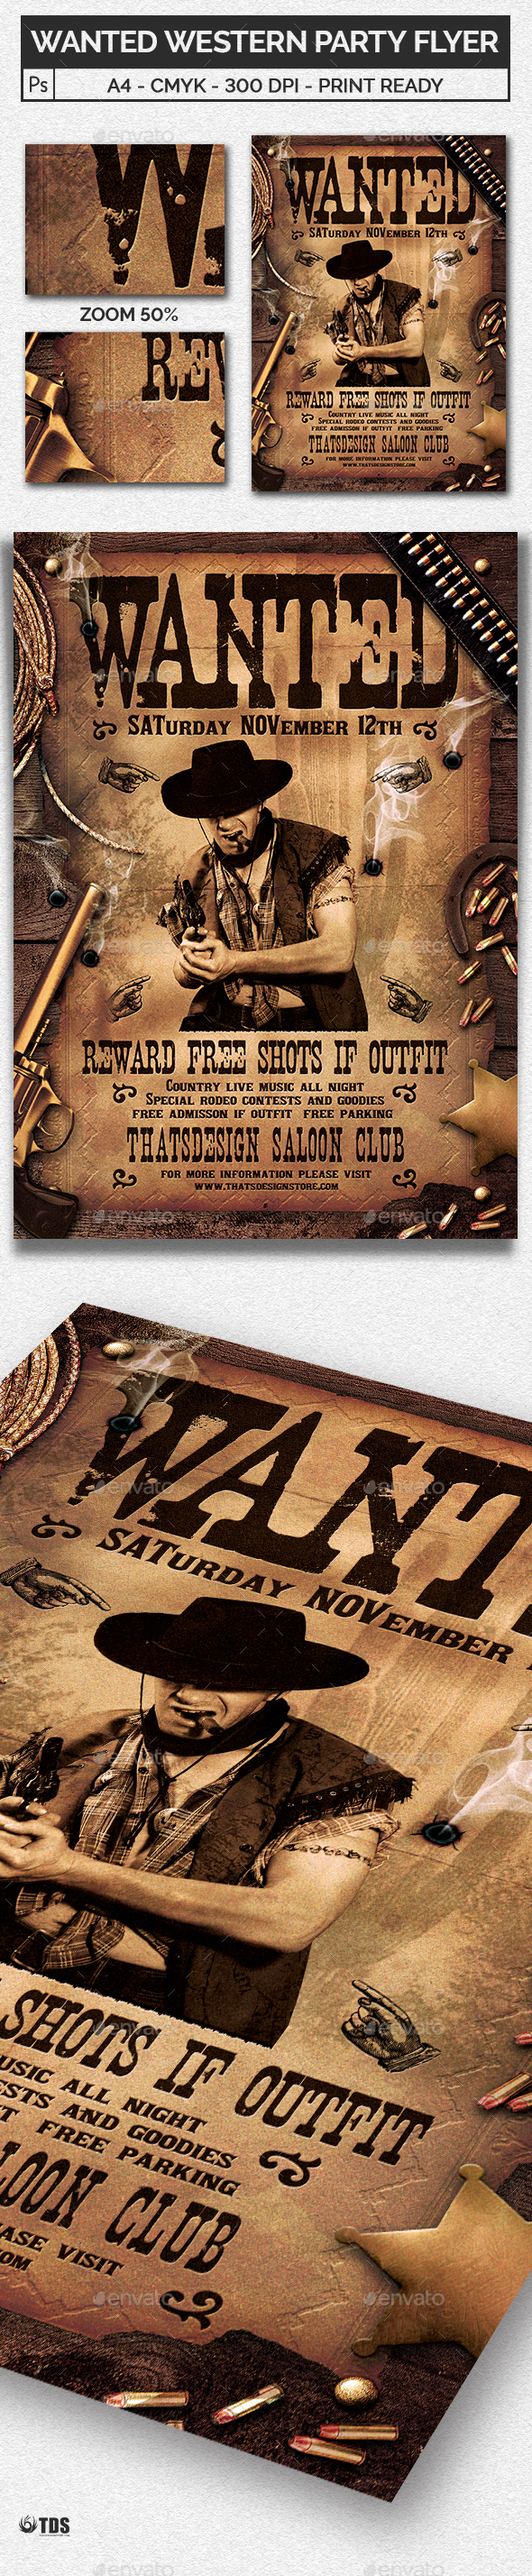 Wanted Western Party Flyer Template - Clubs & Parties Events